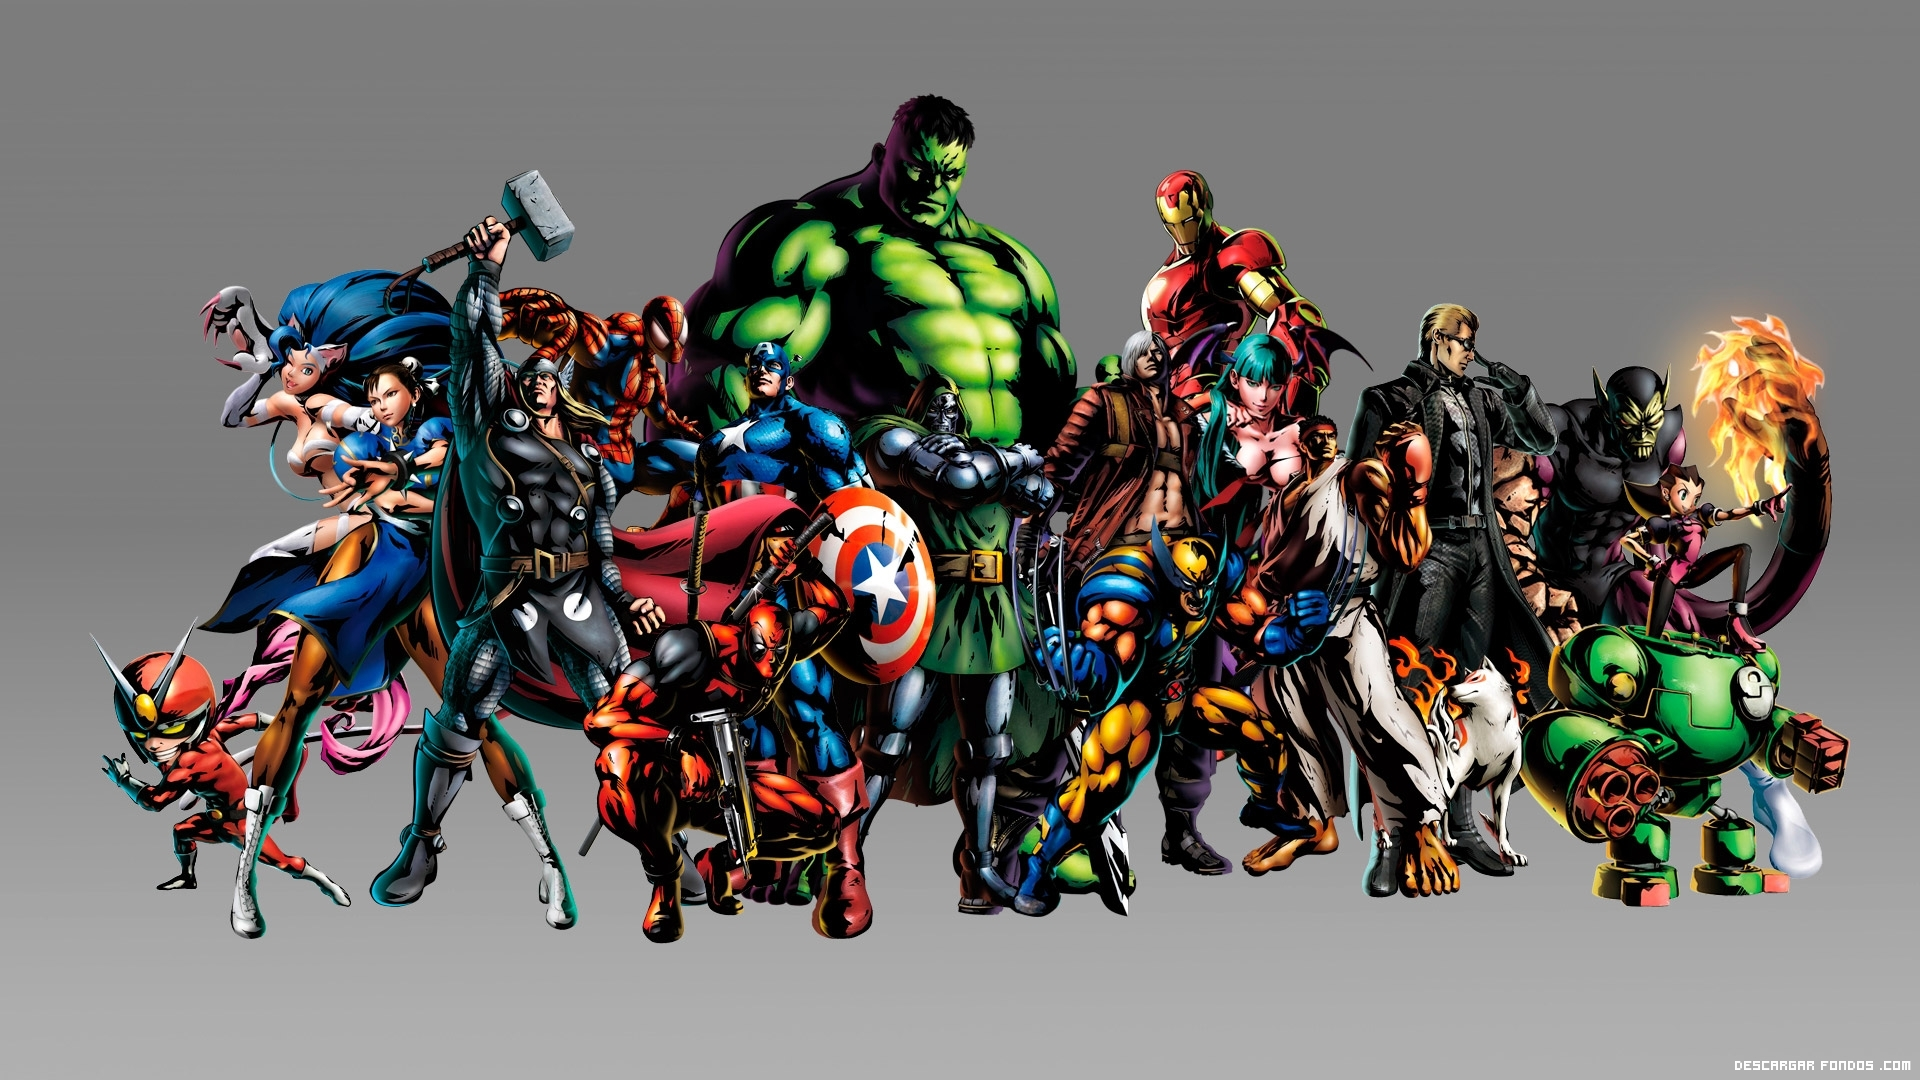 Marvel Super Heroes HD Wallpaper 6647 1920x1080